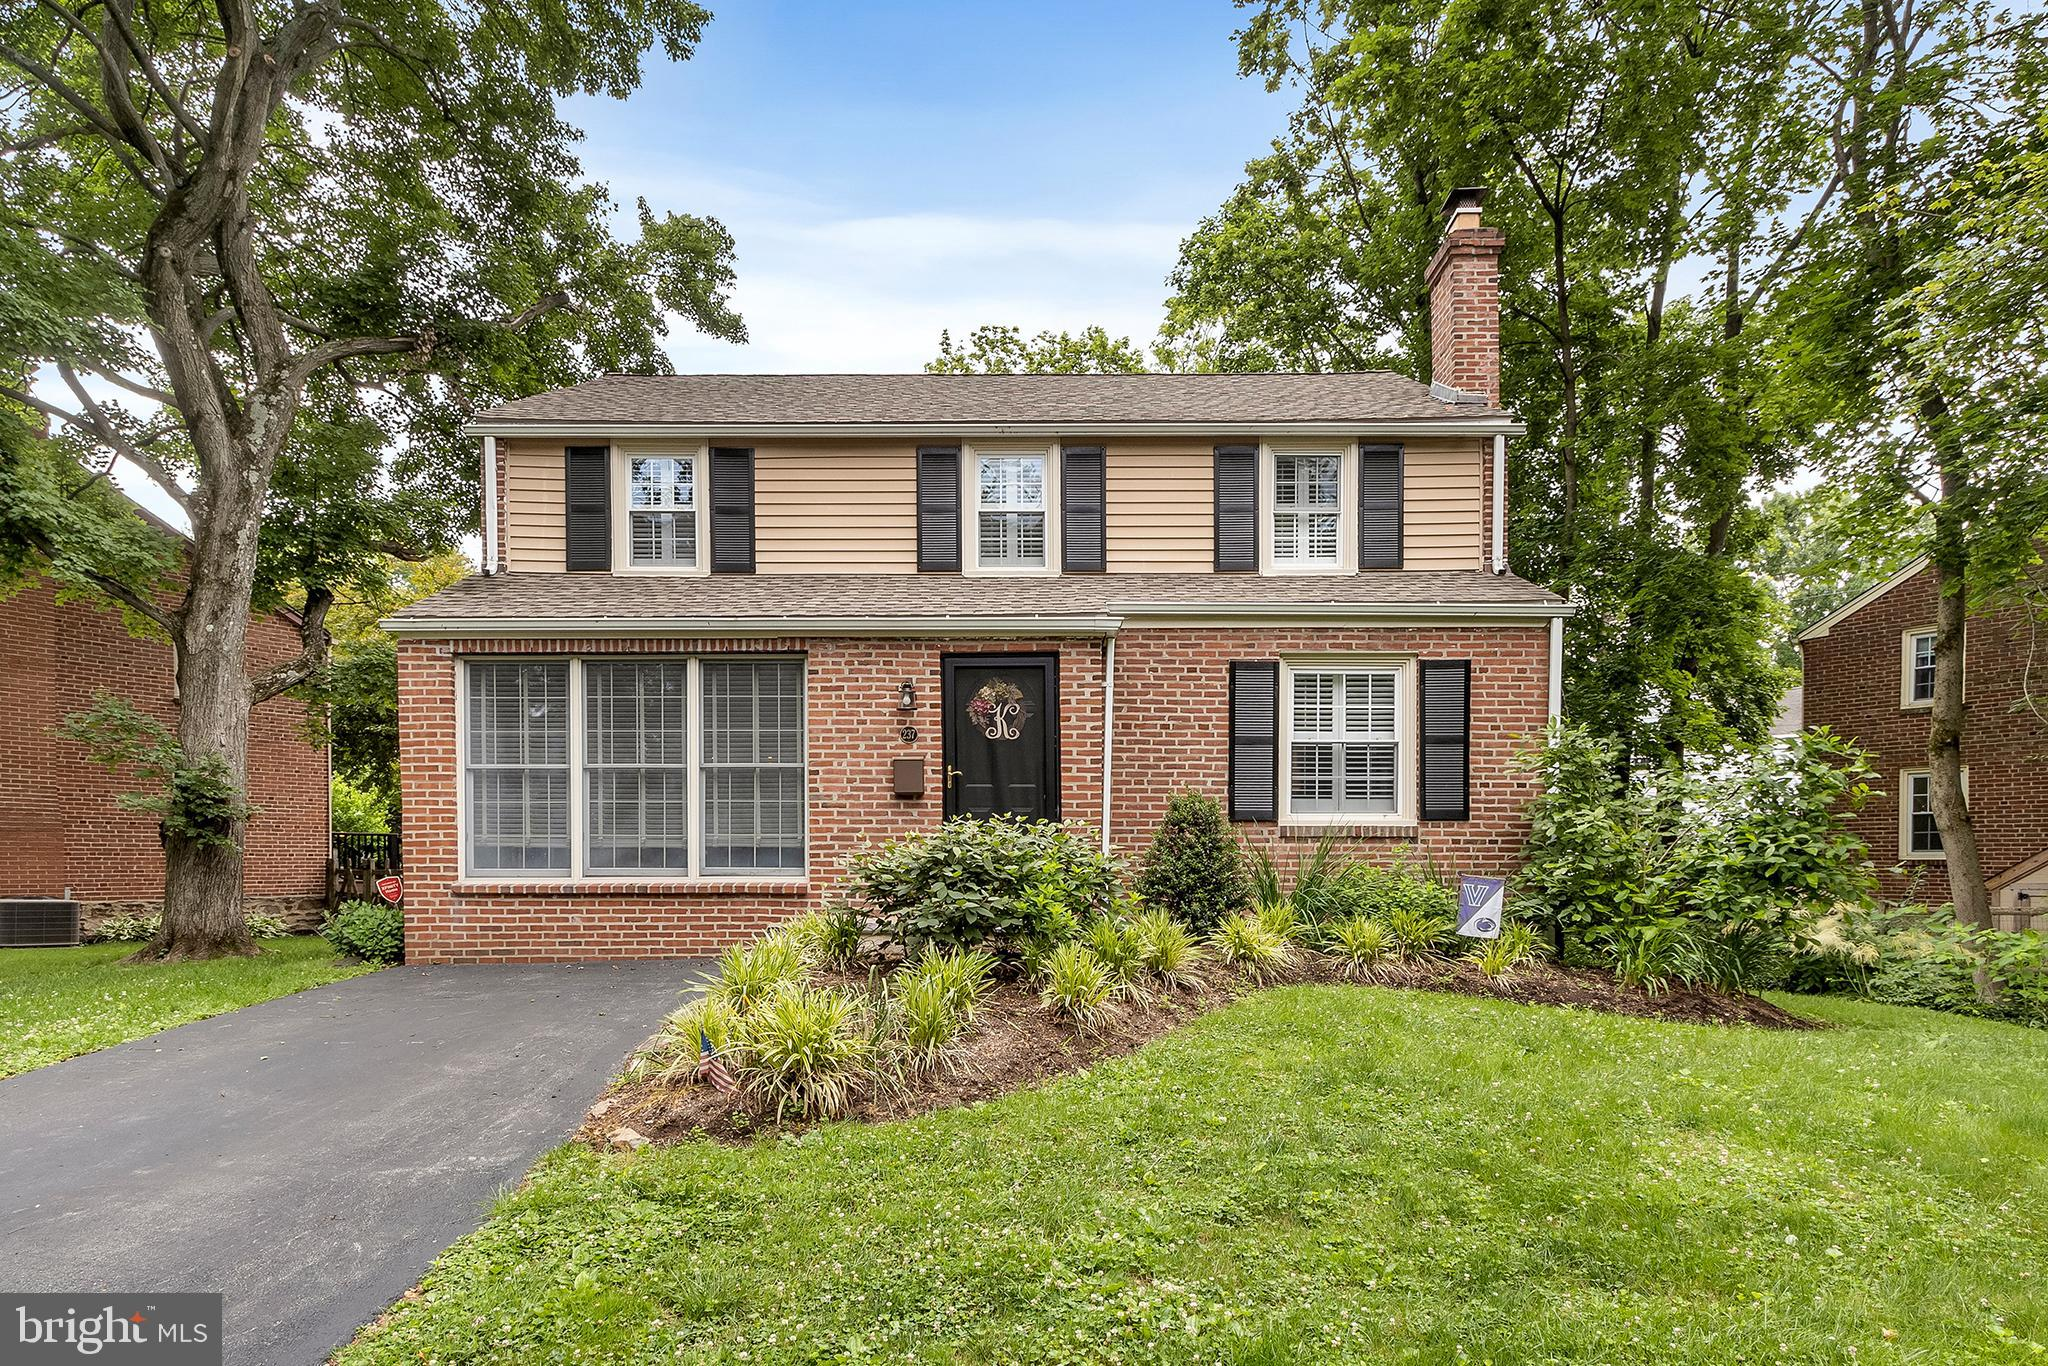 **Over 2,184 square feet of finished living space.  Check Floor Plans Available Online**This charming, updated brick-front colonial home perched on a quiet, leafy circle in sought-after Radnor Township features all the amenities and thoughtful touches today's buyers desire, including a larger floor plan with an easy, family-friendly flow. The functional, open-concept first level boasts wide-plank, hand-scraped hardwood floors throughout, along with neutral paint, plantation shutters, oversize windows, high-end light fixtures and custom moldings. The gracious living room—which includes a wood-burning fireplace and built-in bookshelves—connects to a spacious, light-filled dining room that's perfect for entertaining. The updated kitchen spans the entire width of the home and features a farmhouse sink, new stainless steel appliances, granite countertops, a butler's pantry with wine fridge and convenient sliding door access to the lush backyard. A lovely family room with floor-to-ceiling windows completes this well-designed first floor. On the fully carpeted lower level, you'll find a cozy family room and half bath, plus an oversize laundry room with space for storage and a second refrigerator. The upper level includes three well-sized bedrooms, including a primary suite with full bath and secondary bedroom with custom closet organization system. Buyers will also appreciate the aged oak floors, plantation shutters and neutral paint throughout this floor, plus a recently updated full hallway bath. The backyard offers an ideal (and low-maintenance!) escape with its composite deck and railing, ample greenspace and storage shed. Located in a friendly, sidewalk-lined neighborhood within walking distance to Clem Macrone Park, the Rosemont Train Station and Villanova University, and Radnor School District —just named the top school district in Pennsylvania! Schedule your appointment today!  Please Note that Delaware County is conducting a real estate tax assessment, effective J